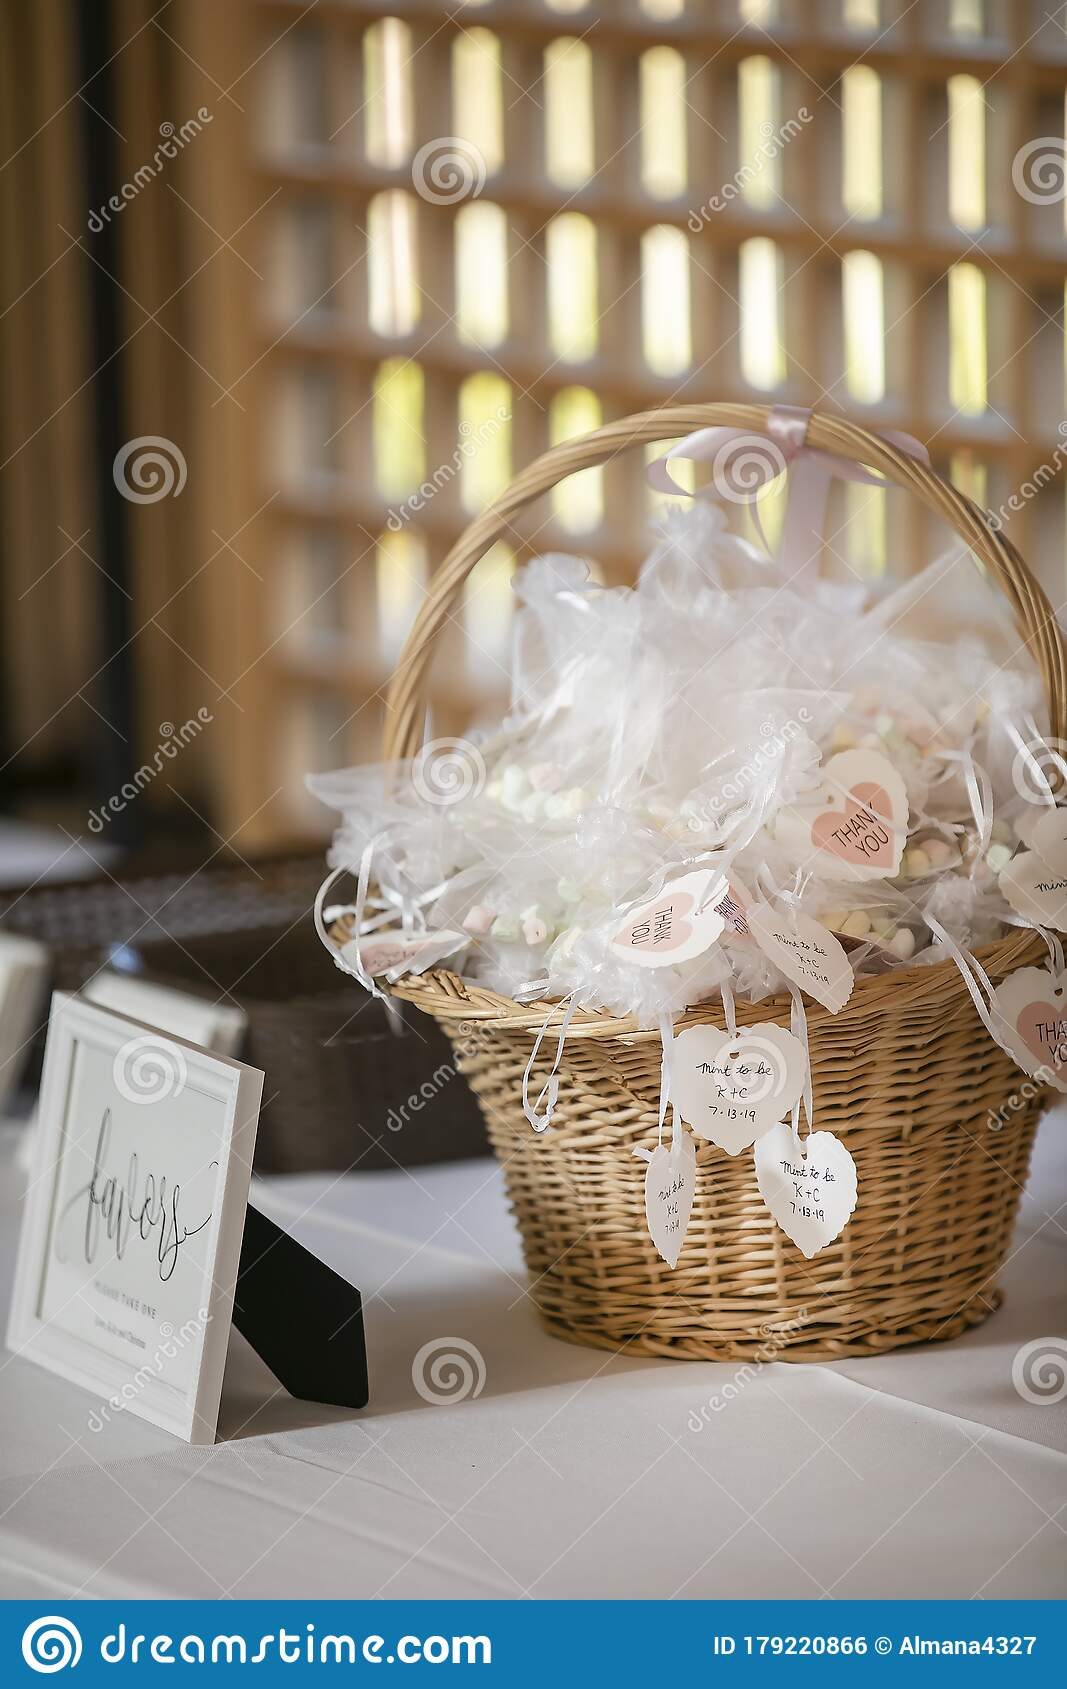 Basket Of Wrapped And Labeled Candies As Party Favors On A Table For A Wedding Ceremony Stock Photo Image Of Holiday Placard 179220866